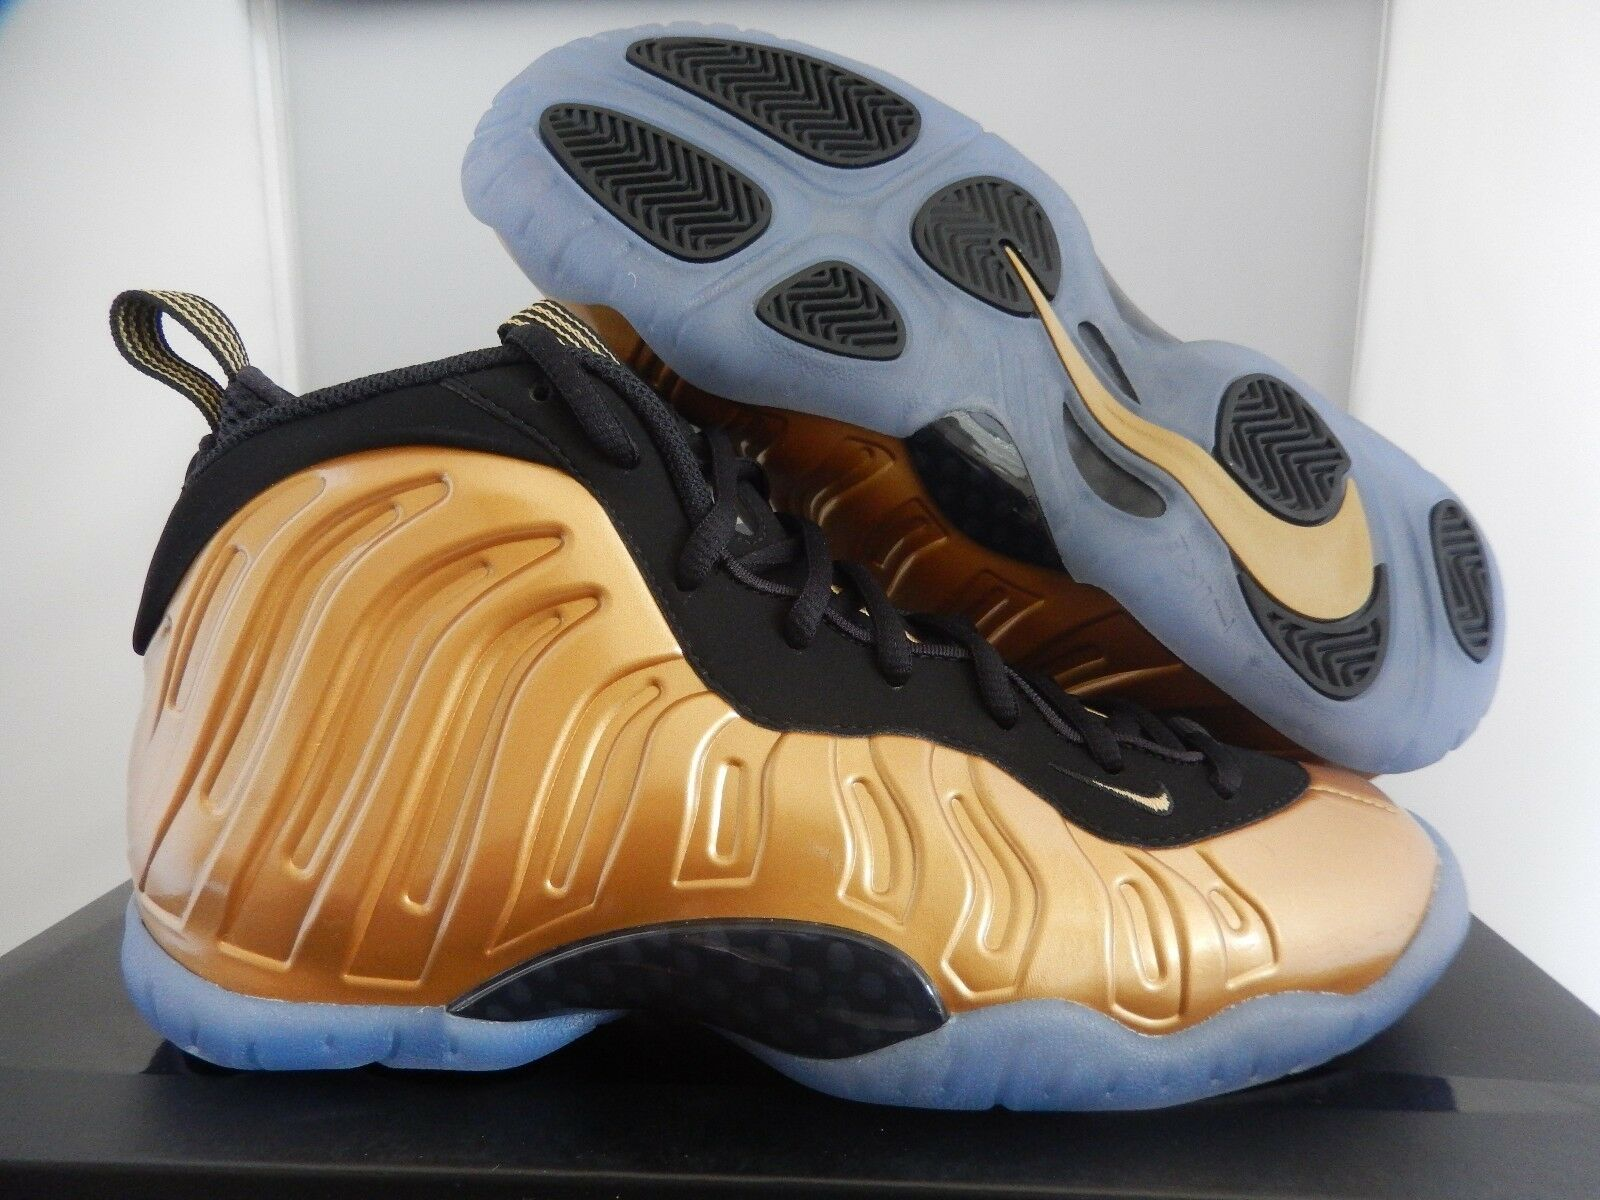 NIKE LITTLE POSITE ONE (GS) METALLIC GOLD- Noir SZ 5Y -femmes  SZ 6.5 [644791-700]